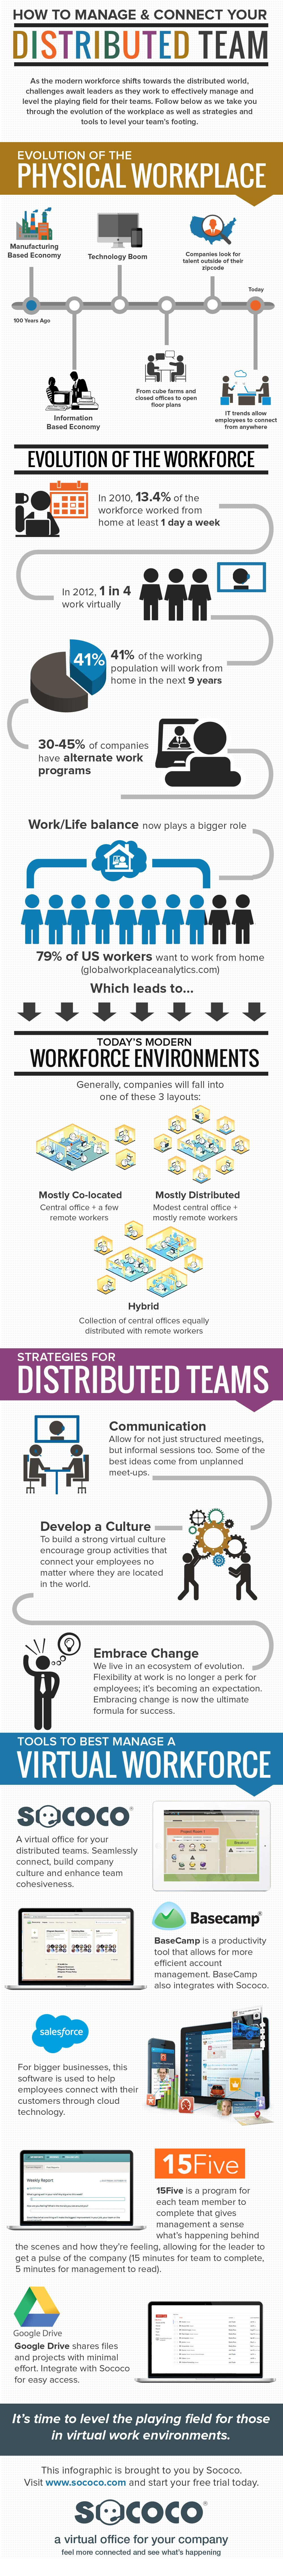 Outsourcing for Small Businesses Infographic